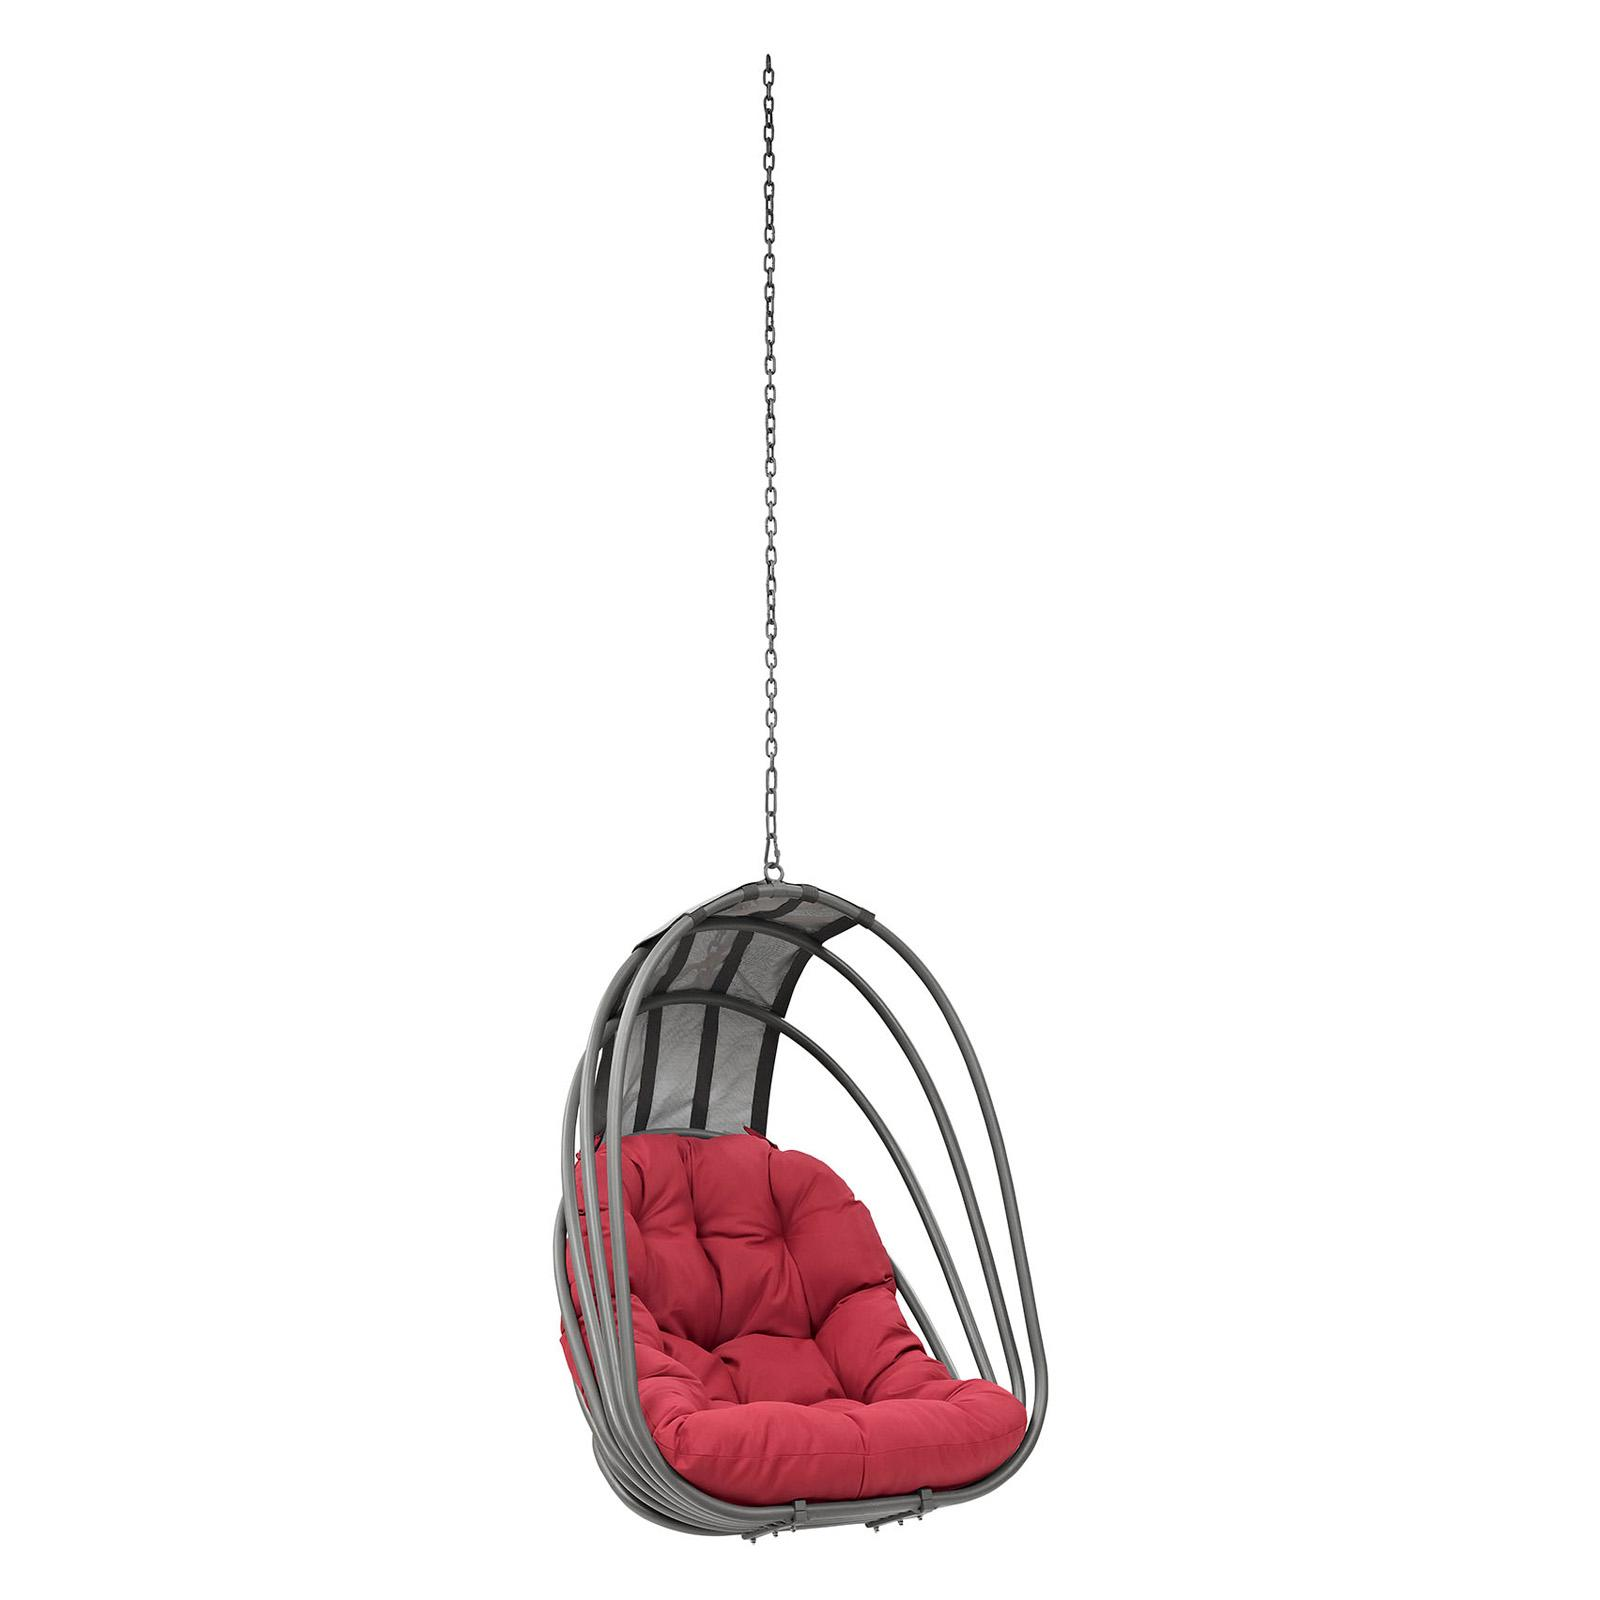 Outdoor Modway Whisk Patio Swing Chair Red - EEI-2656-RED...